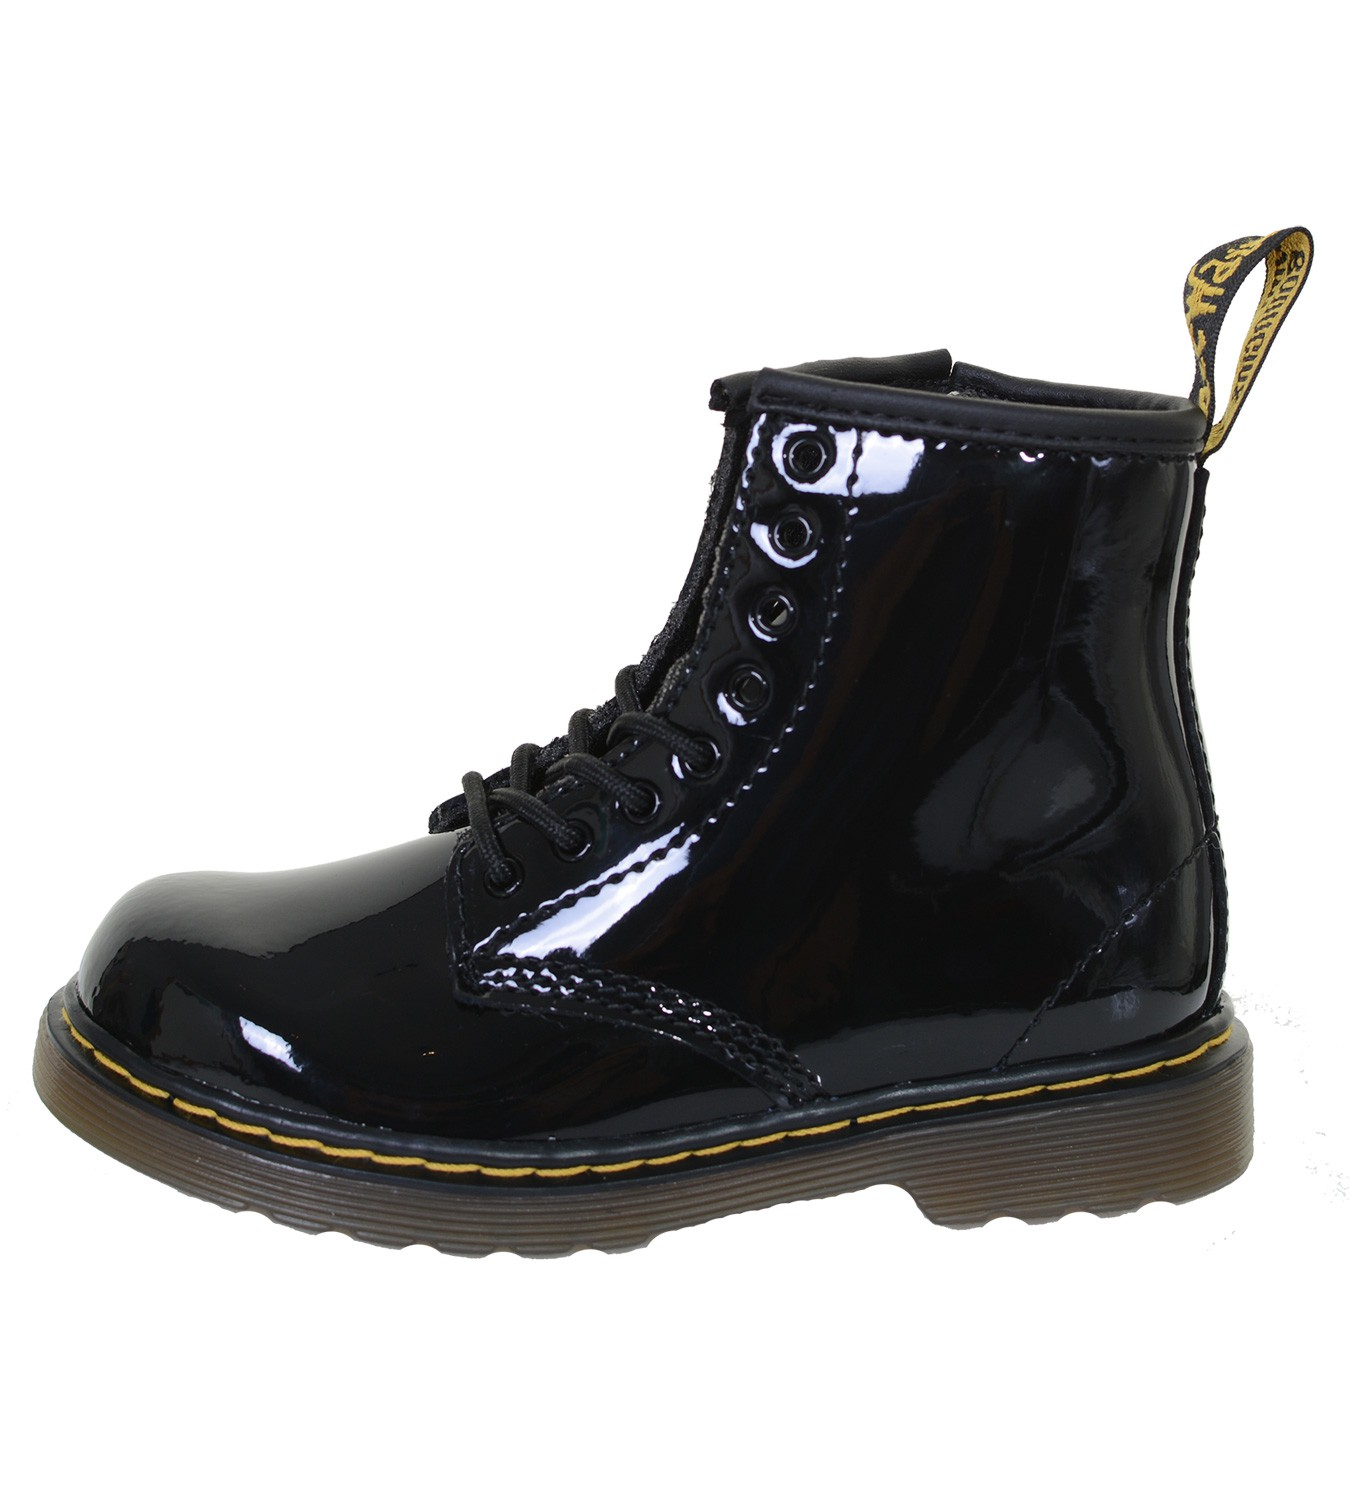 Details about Children Dr.Martens 8 Hole Boat Lace Up Boots Patent Patent Lamper Black